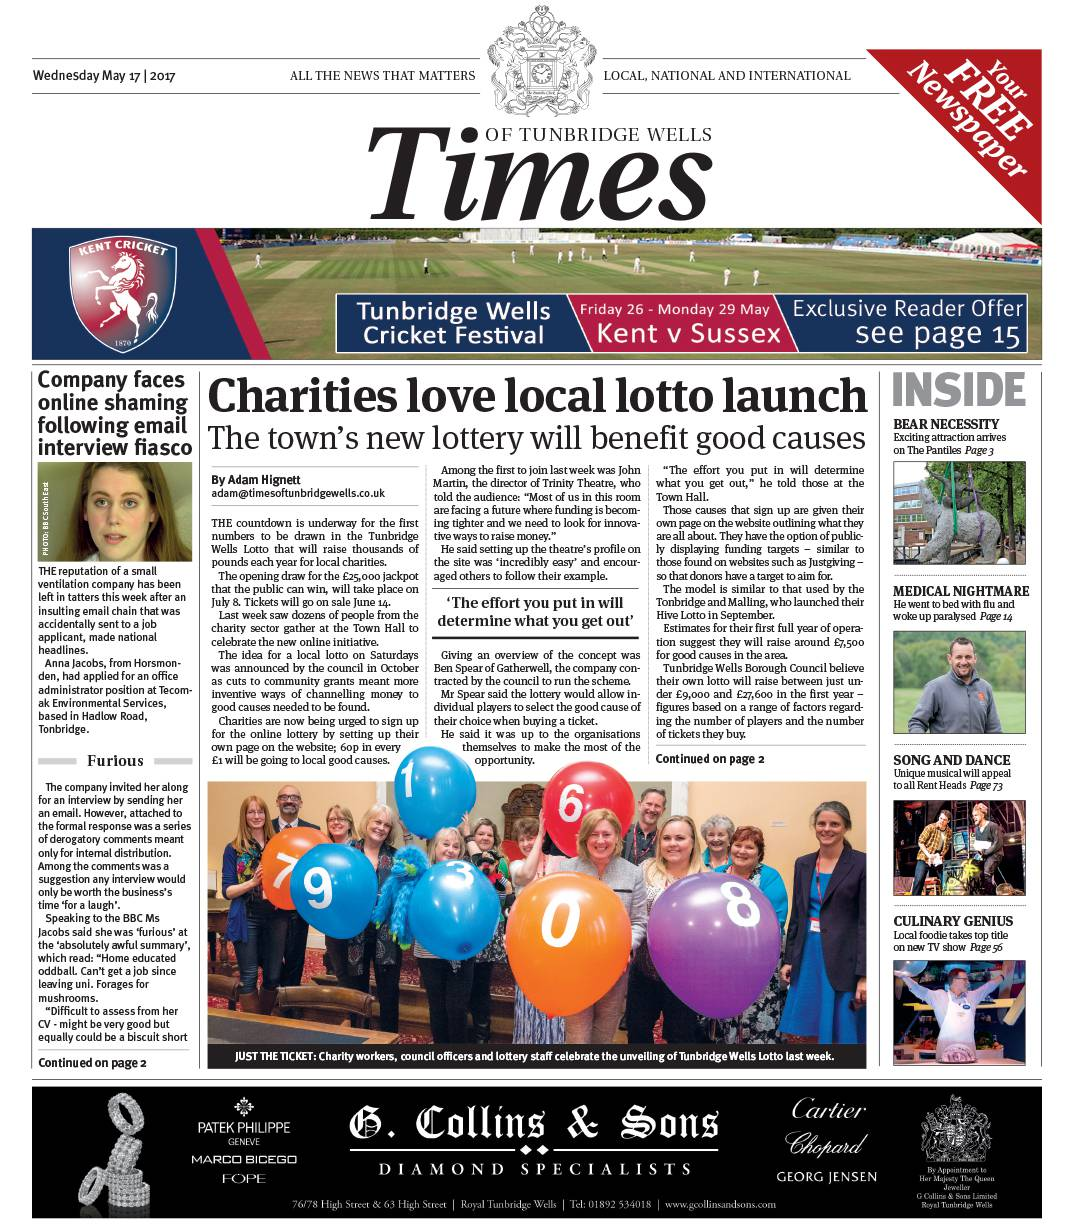 Read the Times of Tunbridge Wells 17th May 2017